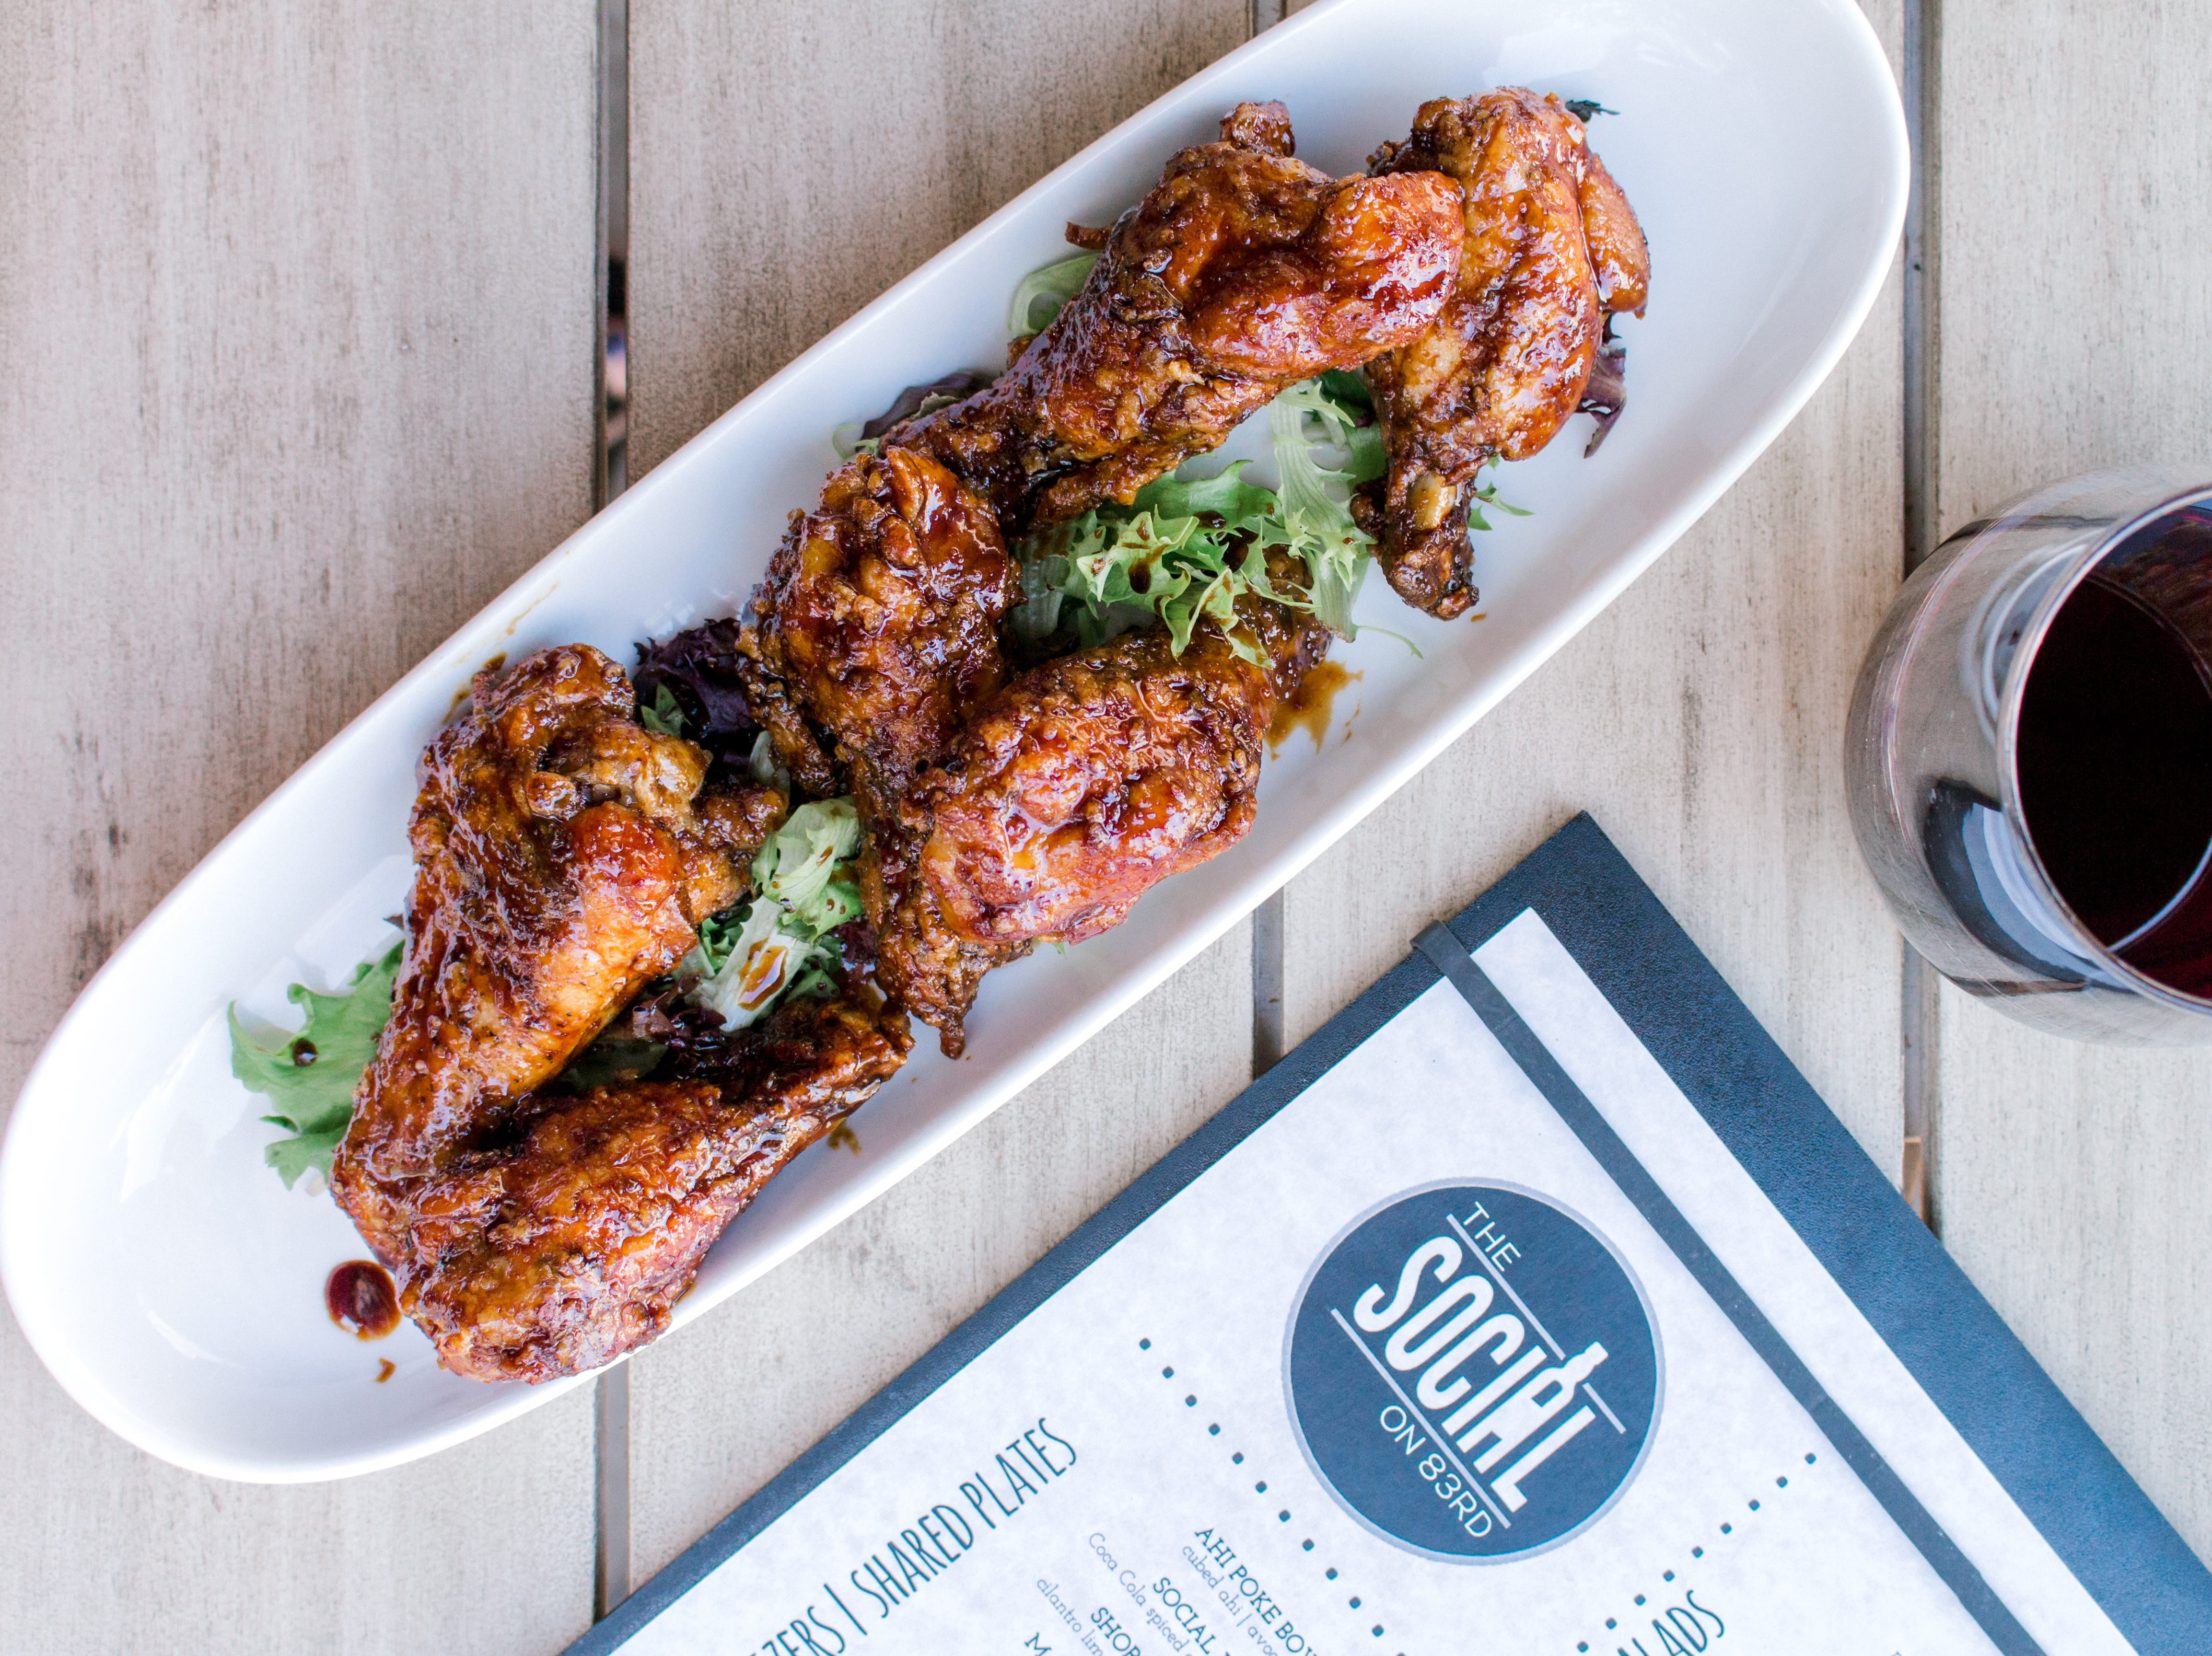 The Social on 83rd's wings are bathed in a coca cola ginger glaze.